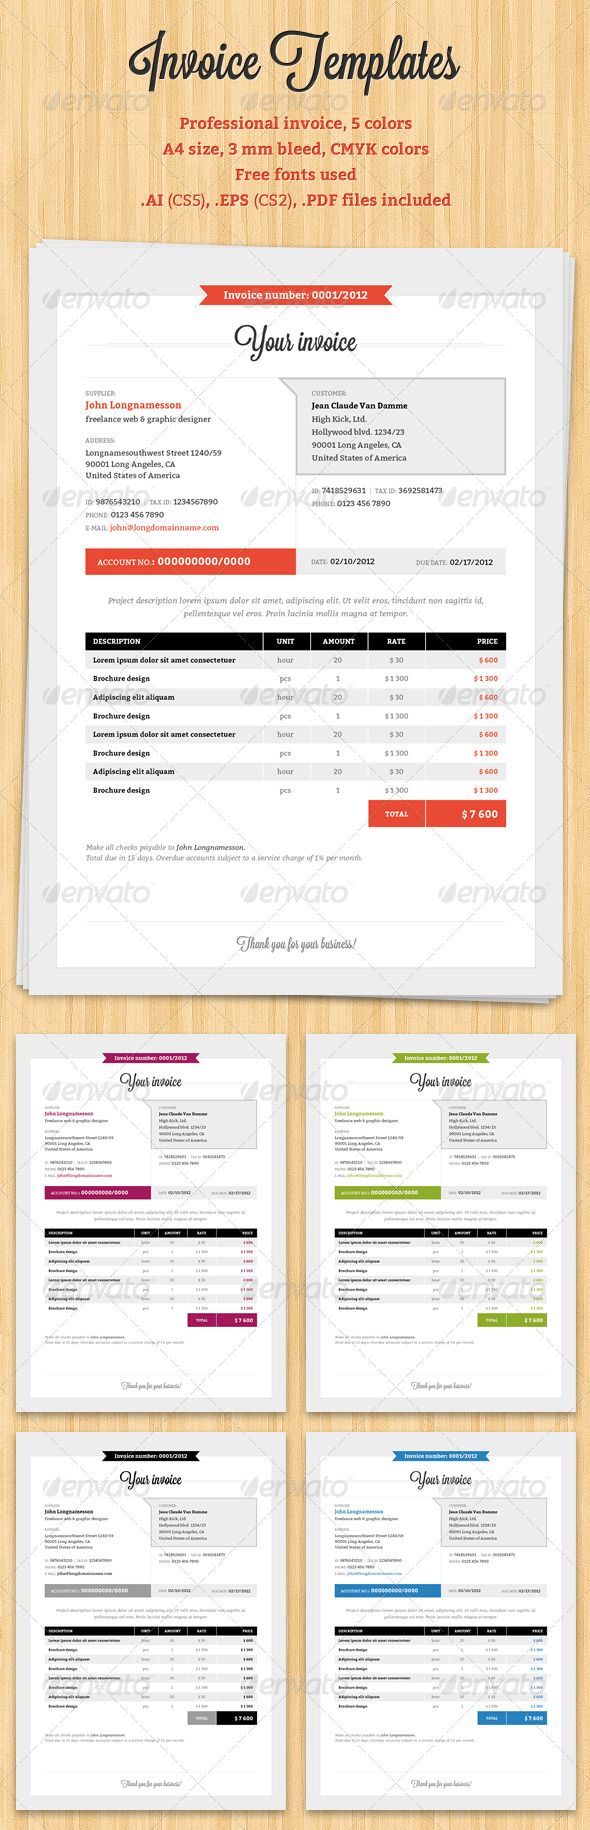 23 Best Invoices Images On Pinterest Proposal Templates Invoice